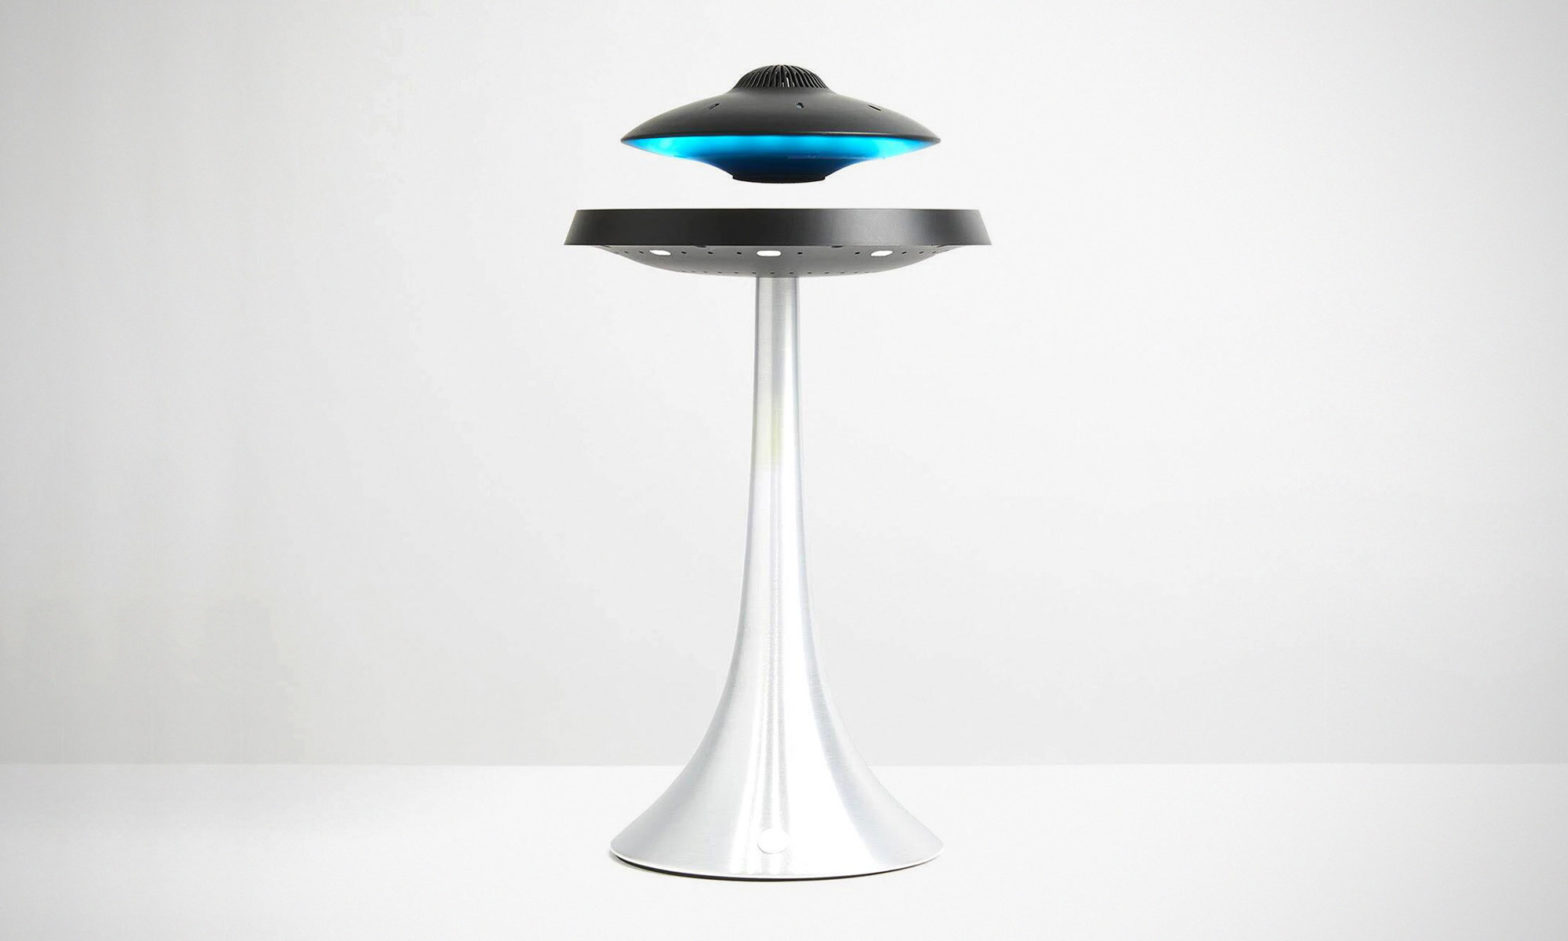 Floately Floating UFO Bluetooth Speaker